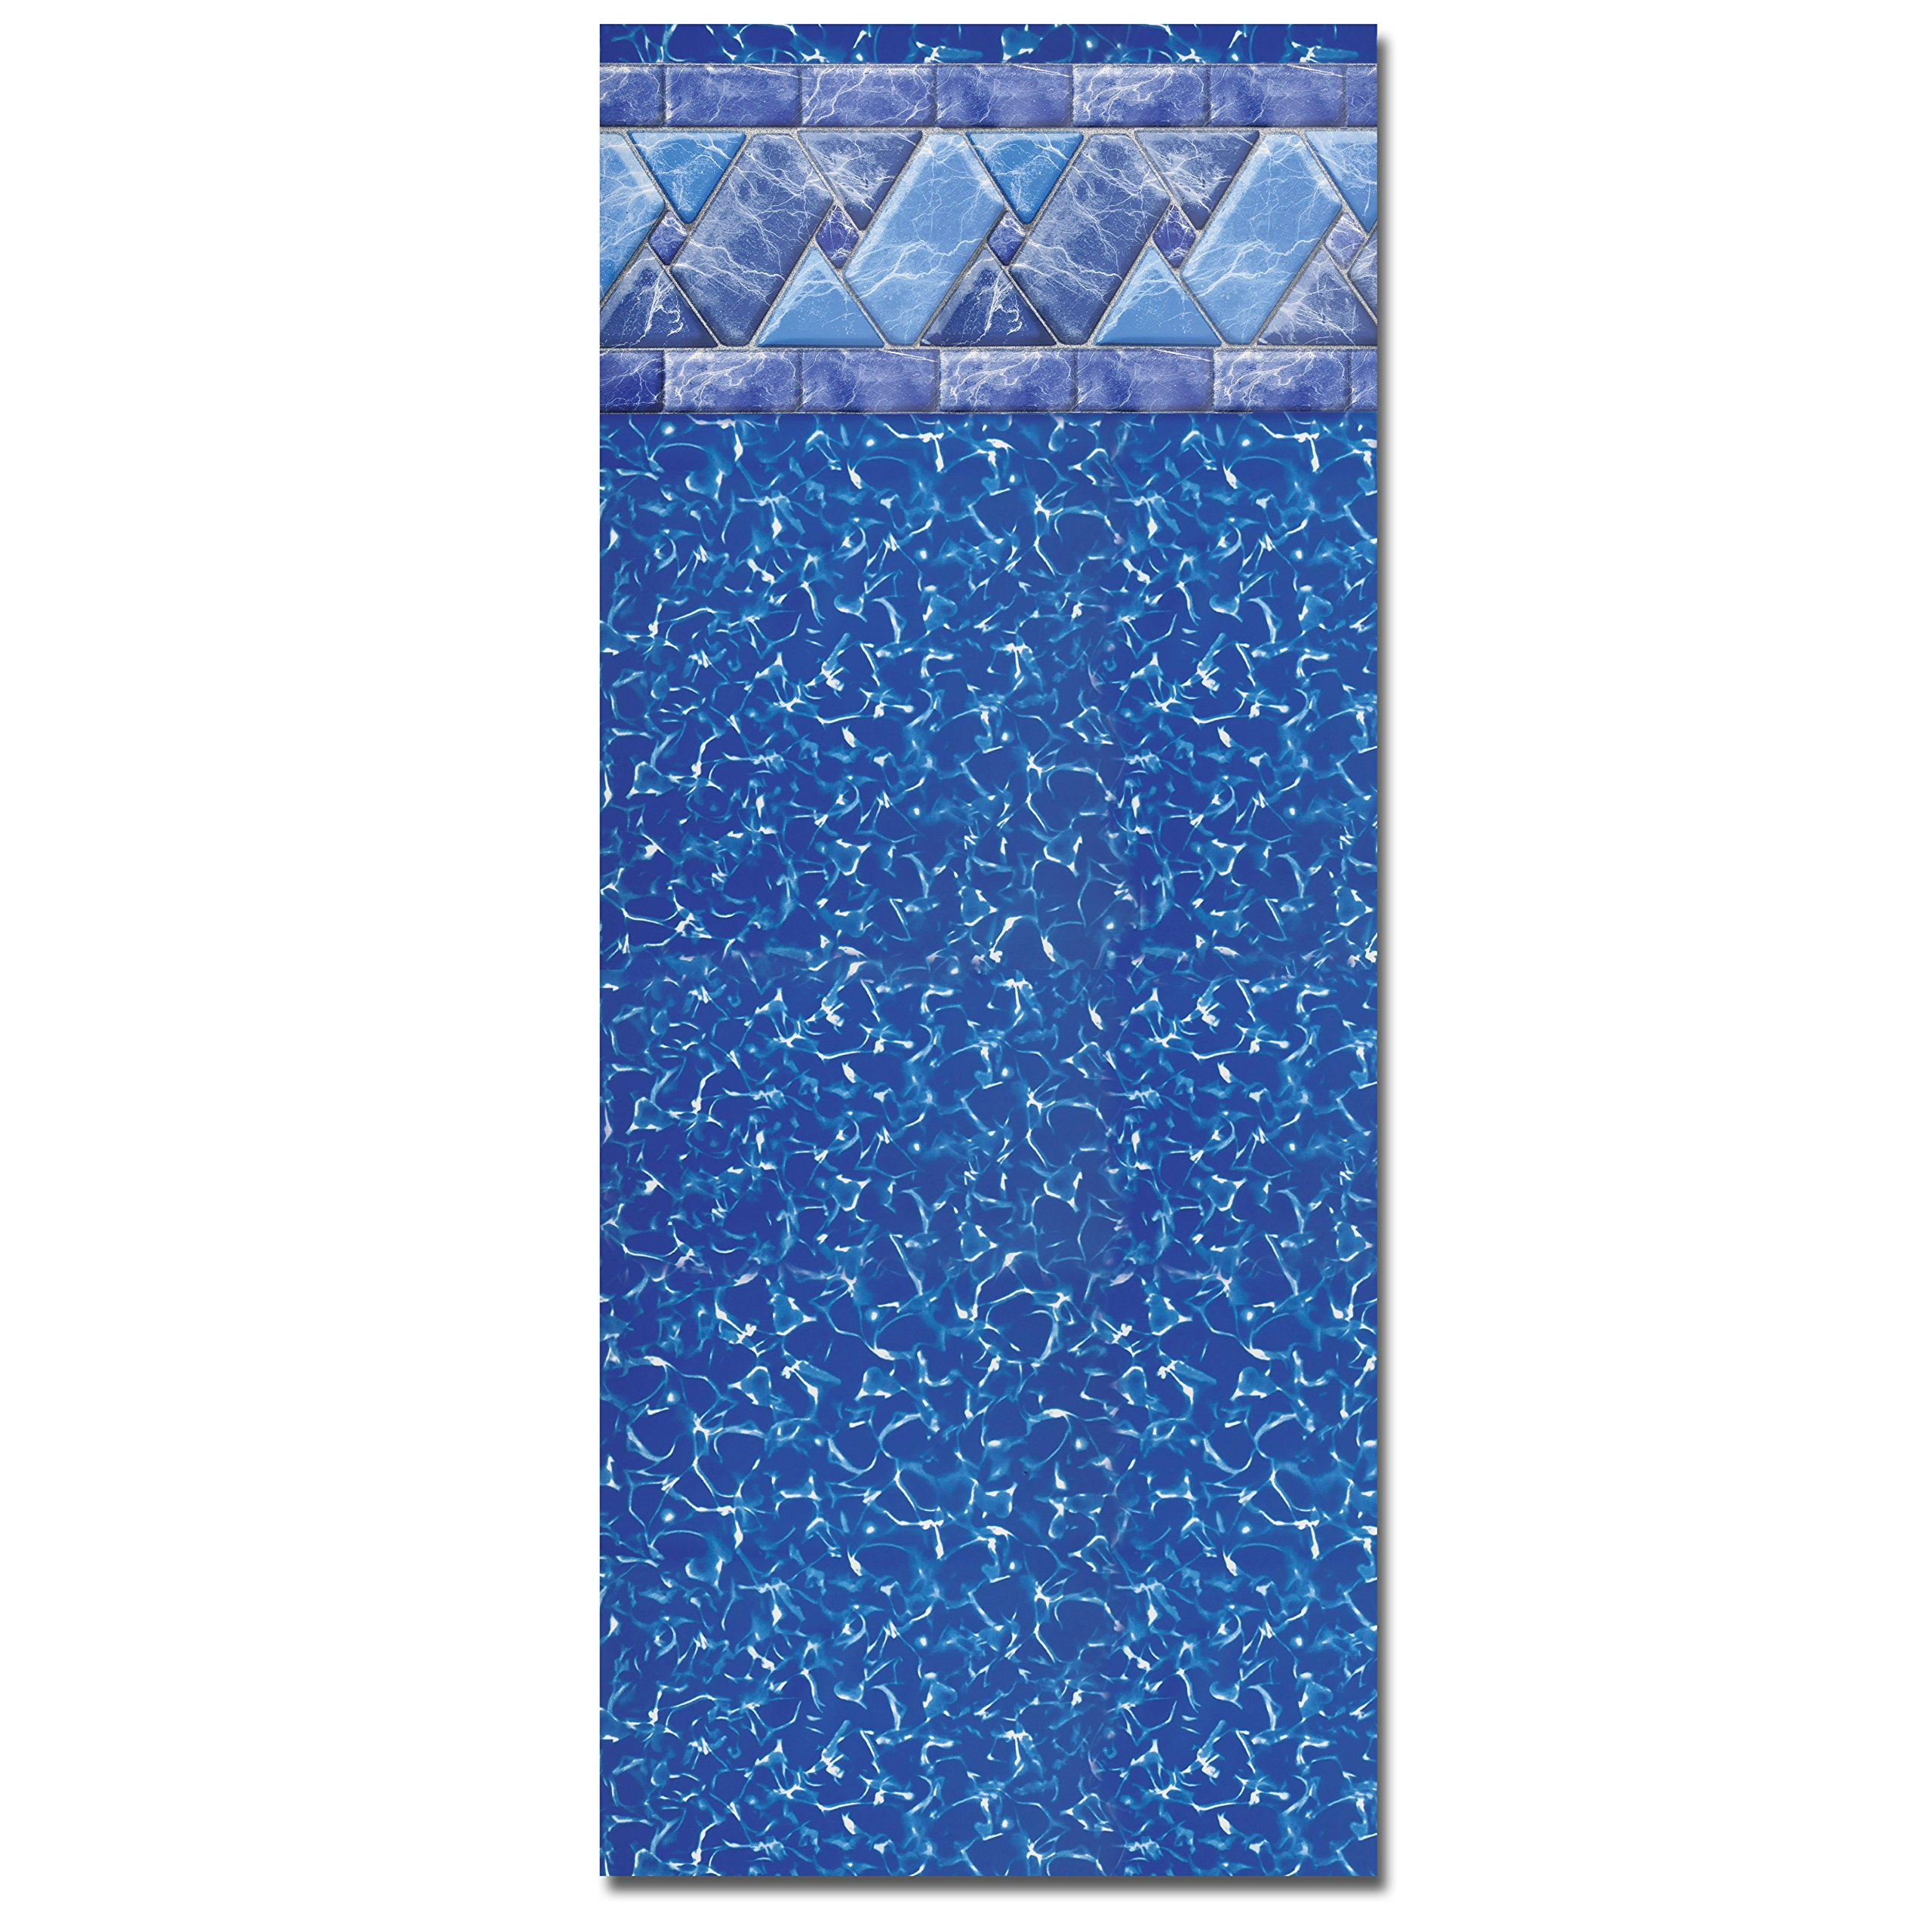 24 Foot Round Unibead Above Ground Pool Liner for 52 Inch Beaded or J-Hook Sidewalls - Riverstone - 25-Gauge by In The Swim